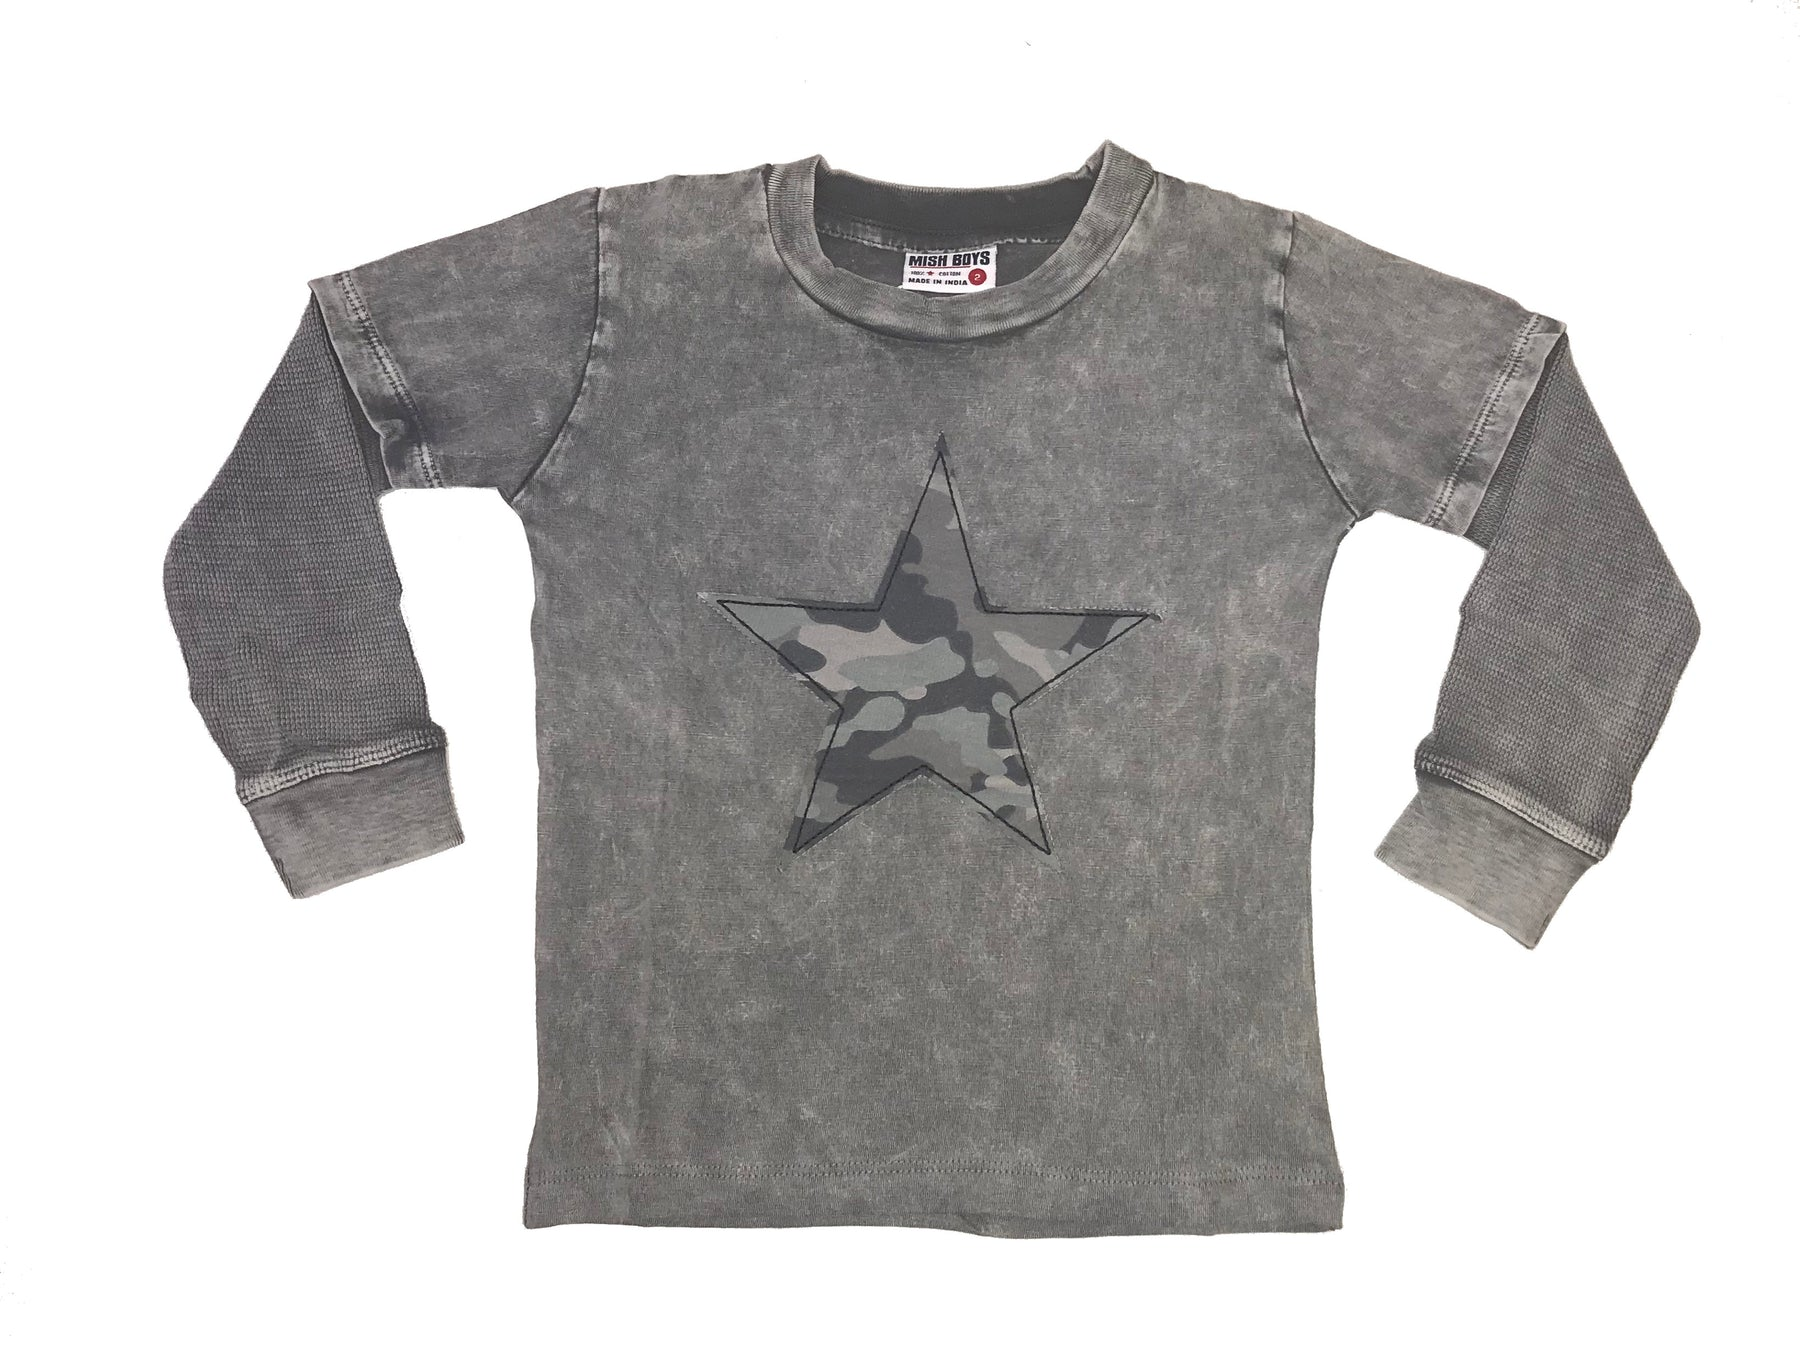 Long Sleeve 2Fer Shirt w Thermal Sleeves - Coal Enzyme with Black Camo Star (4288070189131)